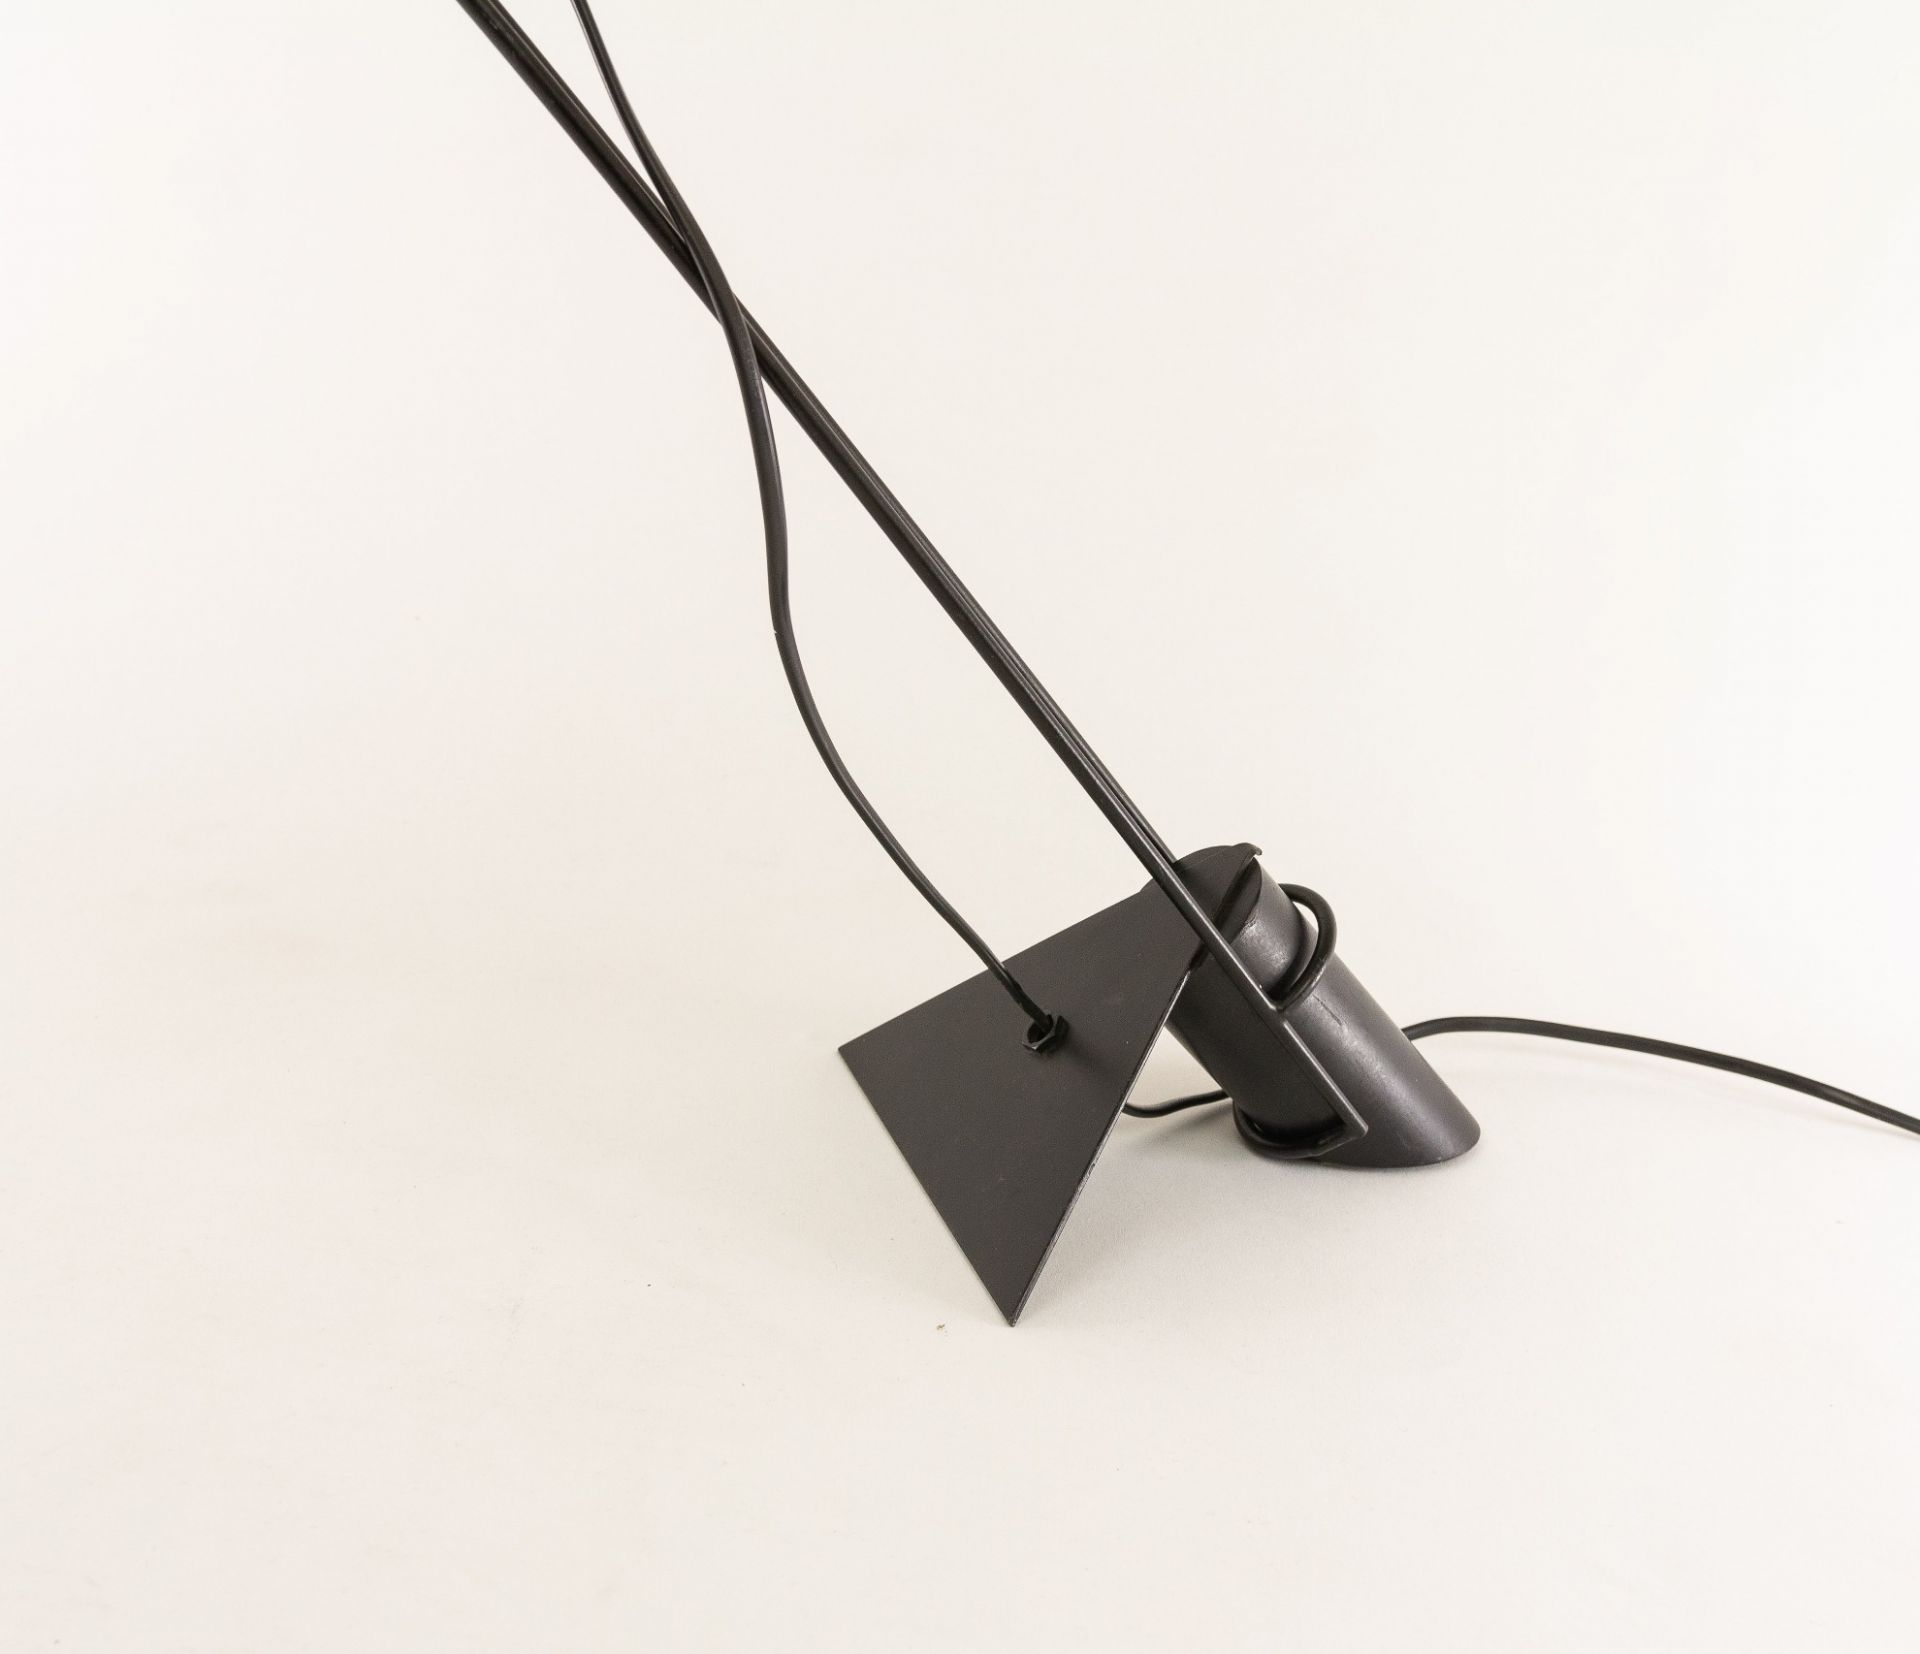 Adjustable black metal table lamp from Italy, 1970s